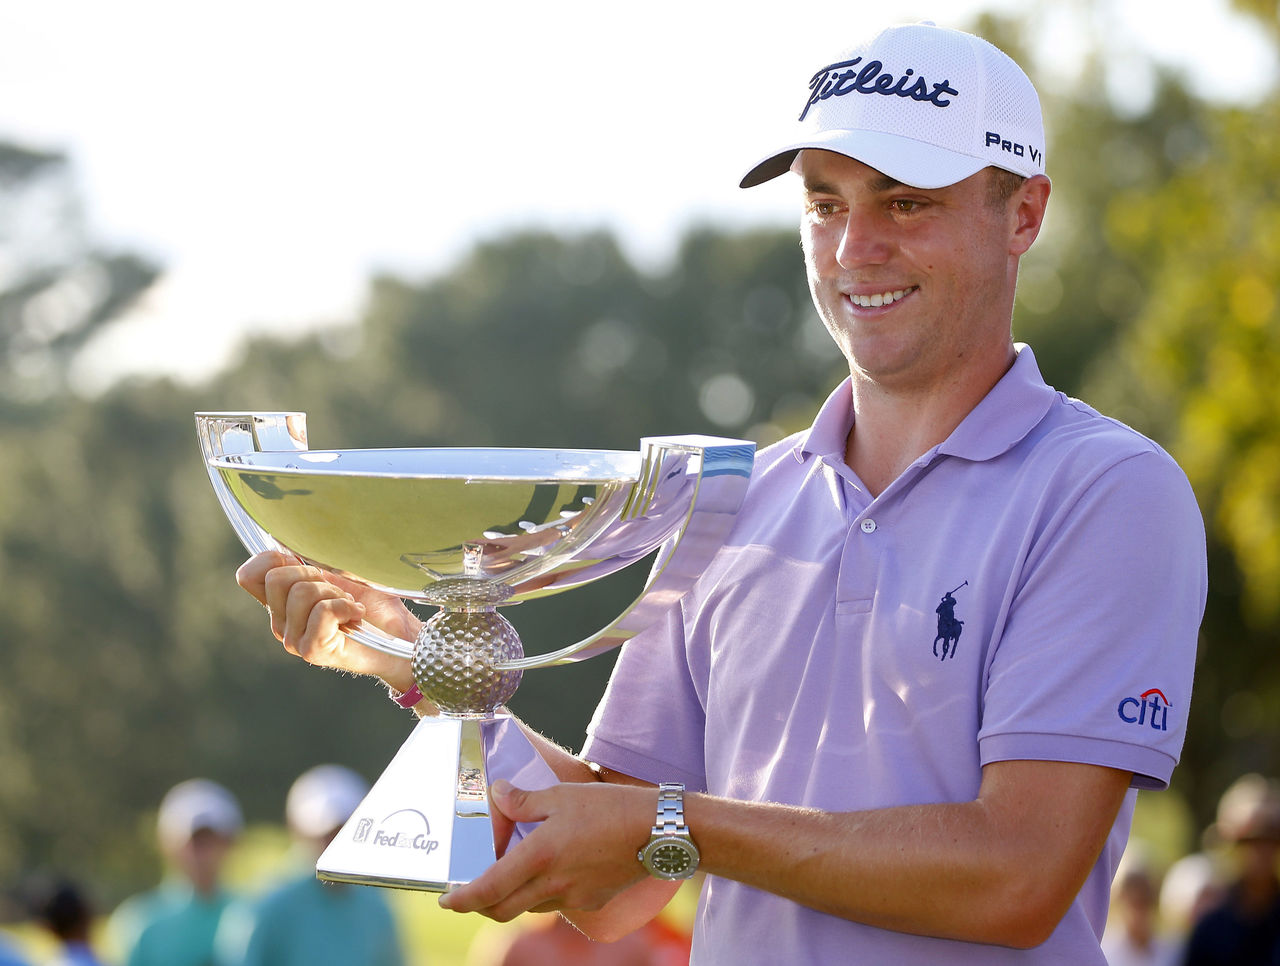 Cropped 2017 09 24t223856z 902440030 nocid rtrmadp 3 pga the tour championship final round